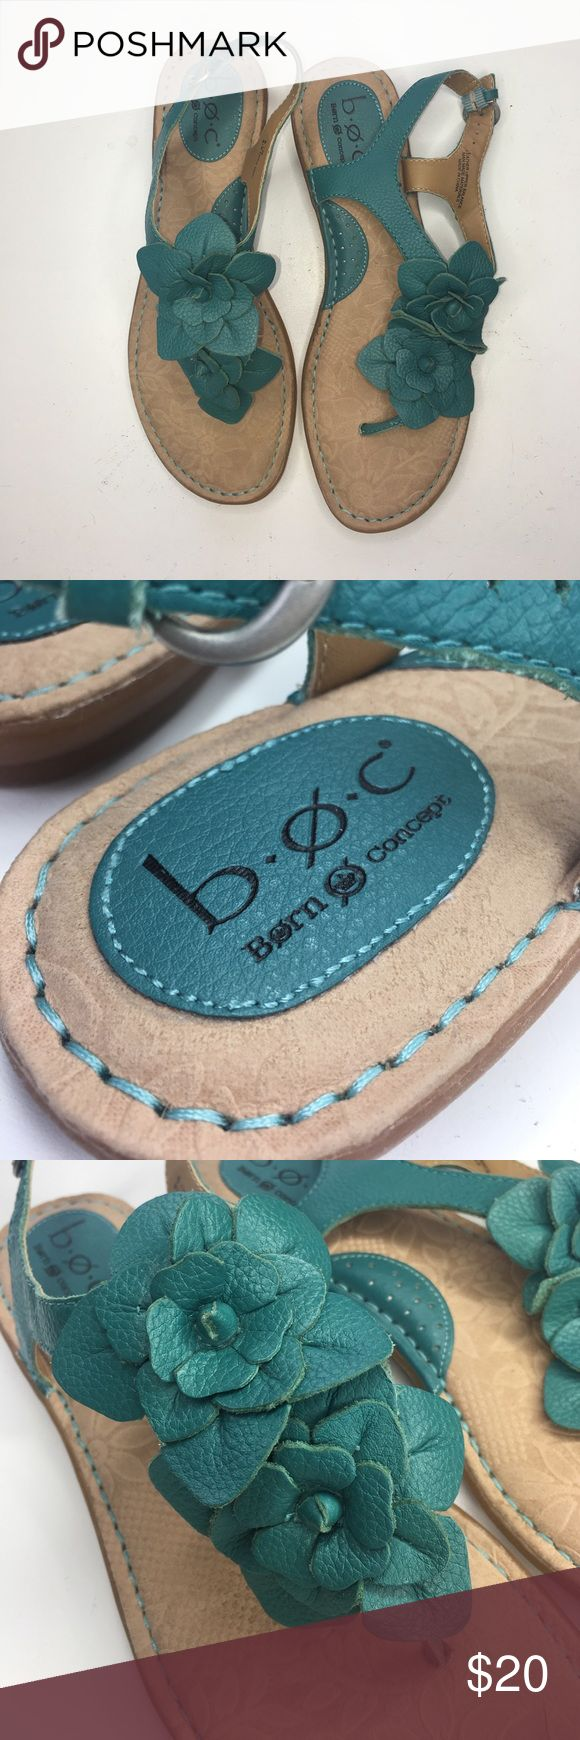 Born Turquoise Sandals Cute turquoise sandals by b.o.c. Born Concept in size 8. They are in GREAT condition. Born Shoes Sandals